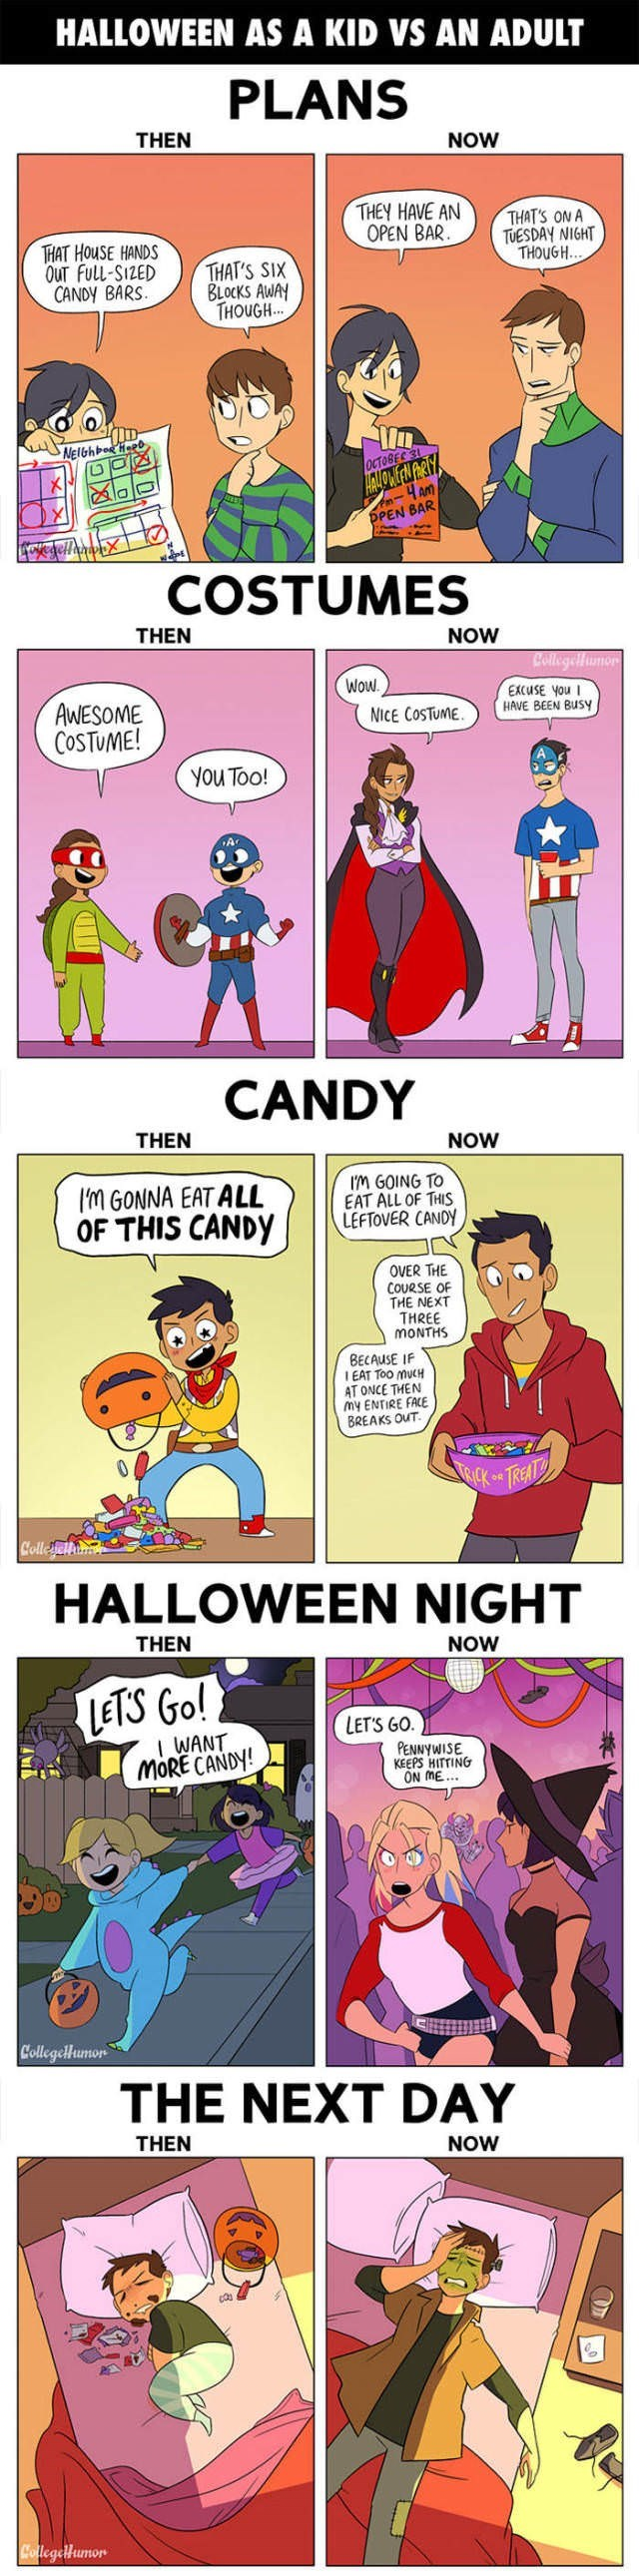 Cartoon - HALLOWEEN AS A KID VS AN ADULT PLANS THEN NOW THEY HAVE AN OPEN BAR THAT'S ON A TUESDAY NIGHT THOUGH THAT HOUSE HANDS OuT FULL-SIZED CANDY BARS THAT'S SIX BLOCKS AWAY THOUGH. NEIGHbo Hep OCTOBEC 31 -4AM DPEN BAR COSTUMES THEN NOW CollegeHumo Wow NICE COSTUME. EXCUSE You HAVE BEEN BUSY AWESOME COSTUME! You Too! CANDY THEN NOW IM GOING TO EAT ALL OF THIS LEFTOVER CANDY I'm GONNA EAT ALL OF THIS CANDY OVER THE COURSE OF THE NEXT THREE MONTHS BECAUSE IF I EAT Too MUCH AT ONCE THEN my ENTIR